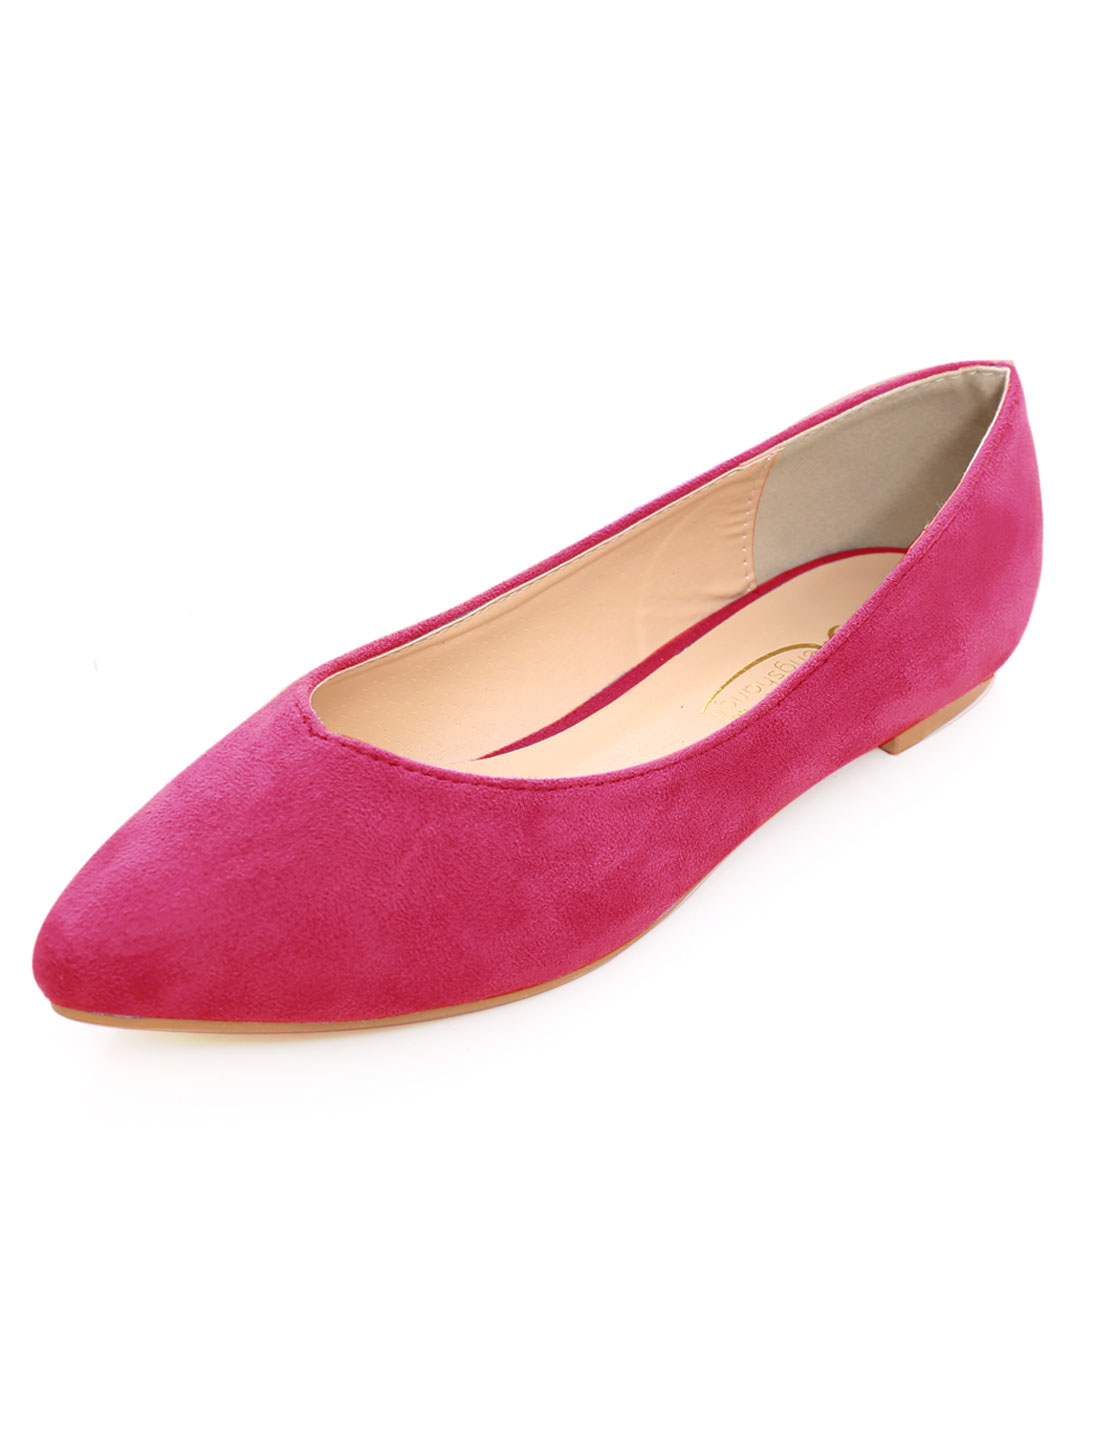 Woman Faux Suede Pointed Padded Insole Flat Shoes Fuchsia 8.5